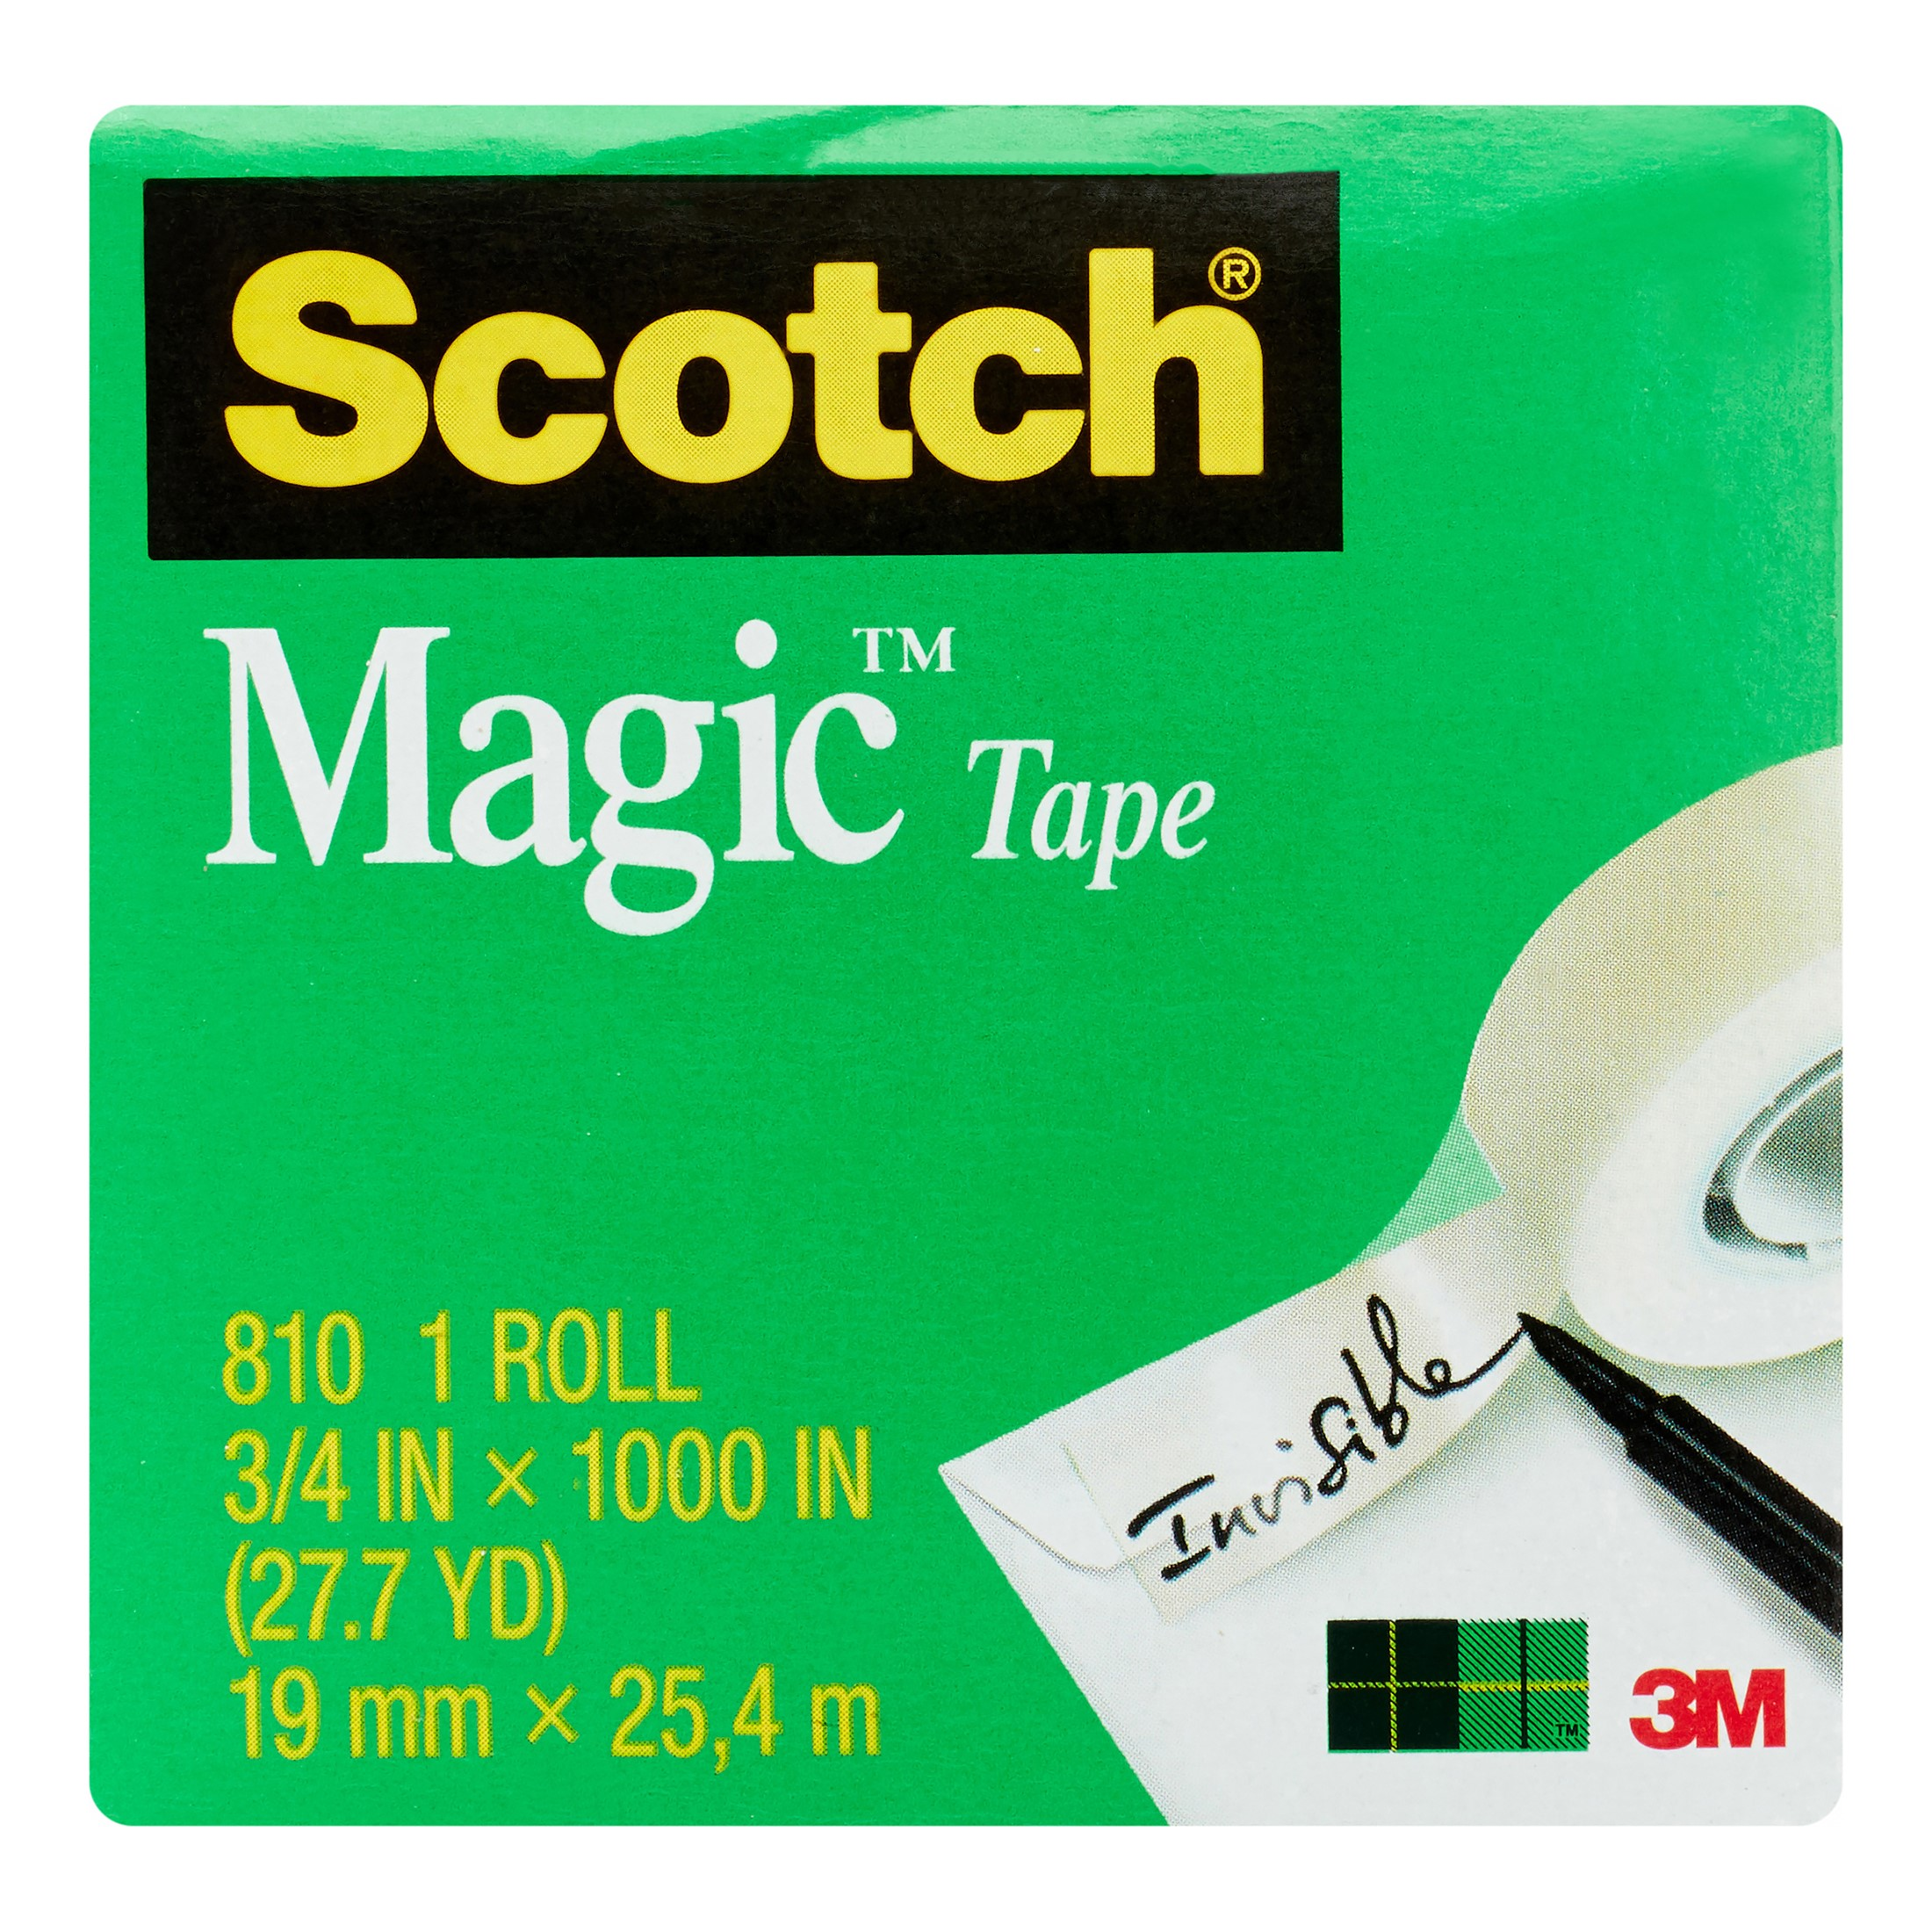 Scotch Magic Office Tape Refills, Clear, 12 Count